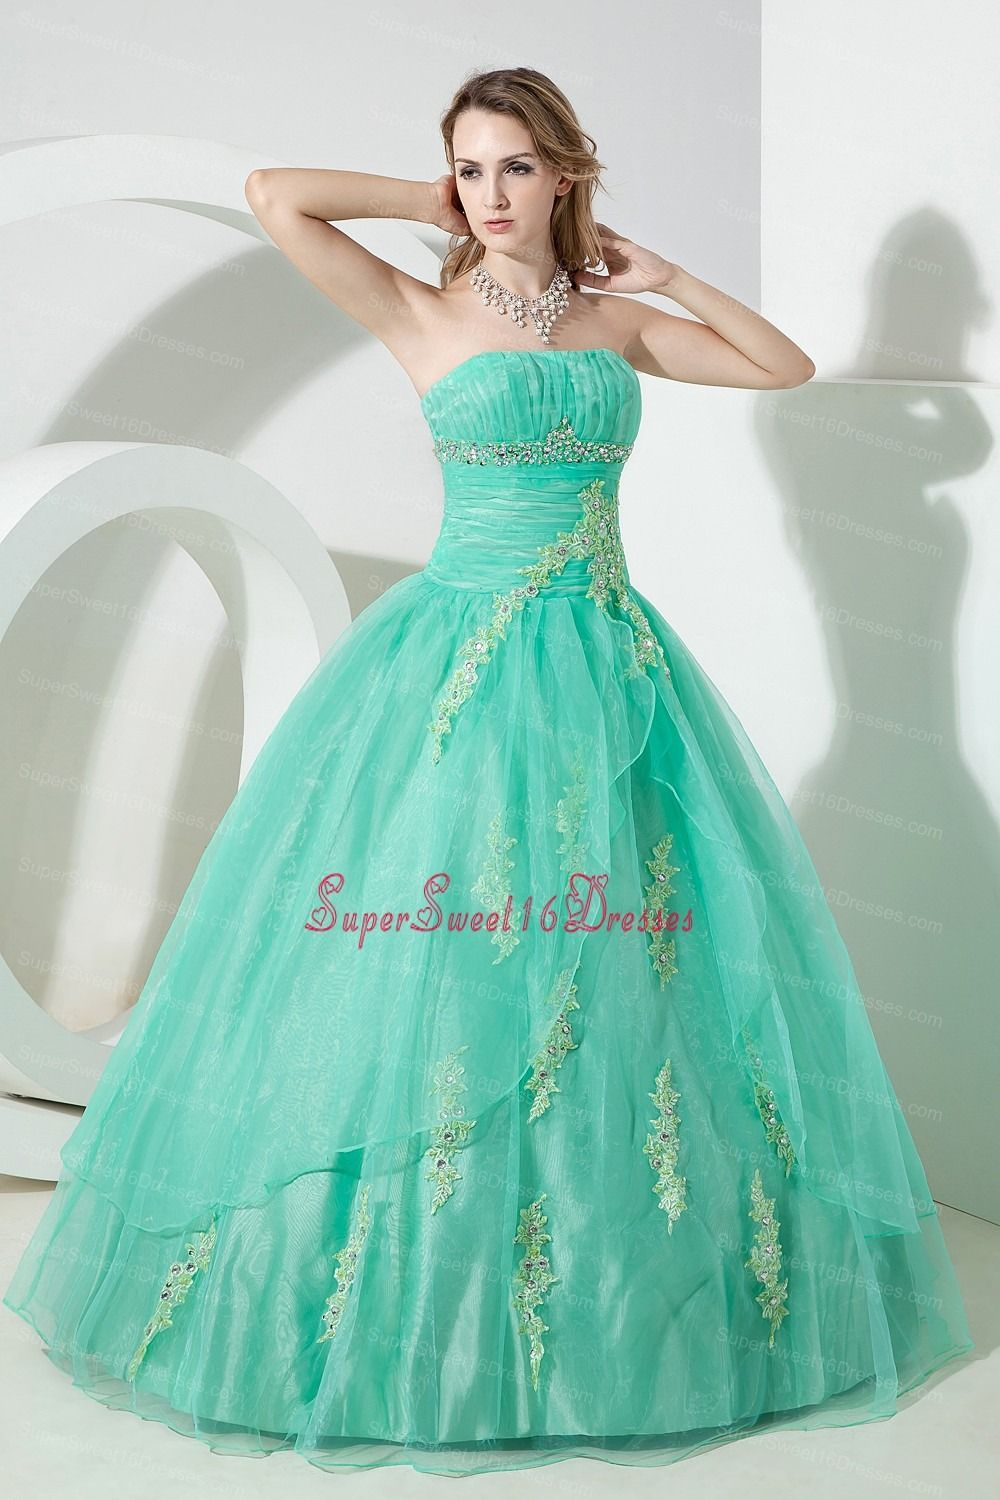 Fashion style Dresses turquoise for sweet 16 photo for girls